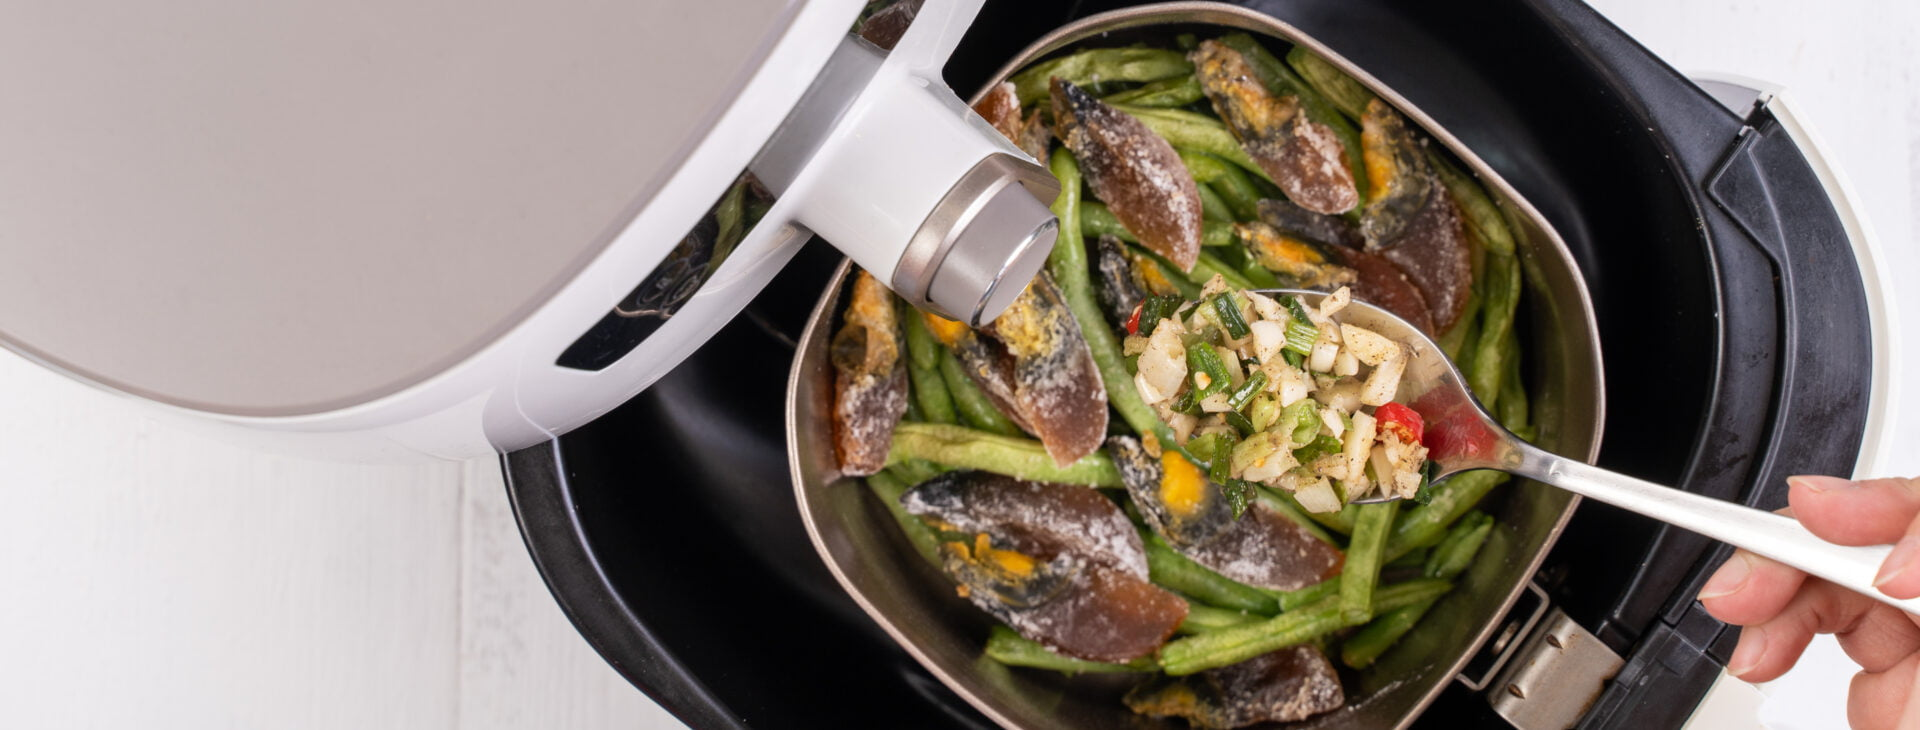 Air fryer meal, cooking green bean, pidan dishes cookery with Airfryer at home, delicious cuisine in Taiwan, Asia, Asian Taiwanese food